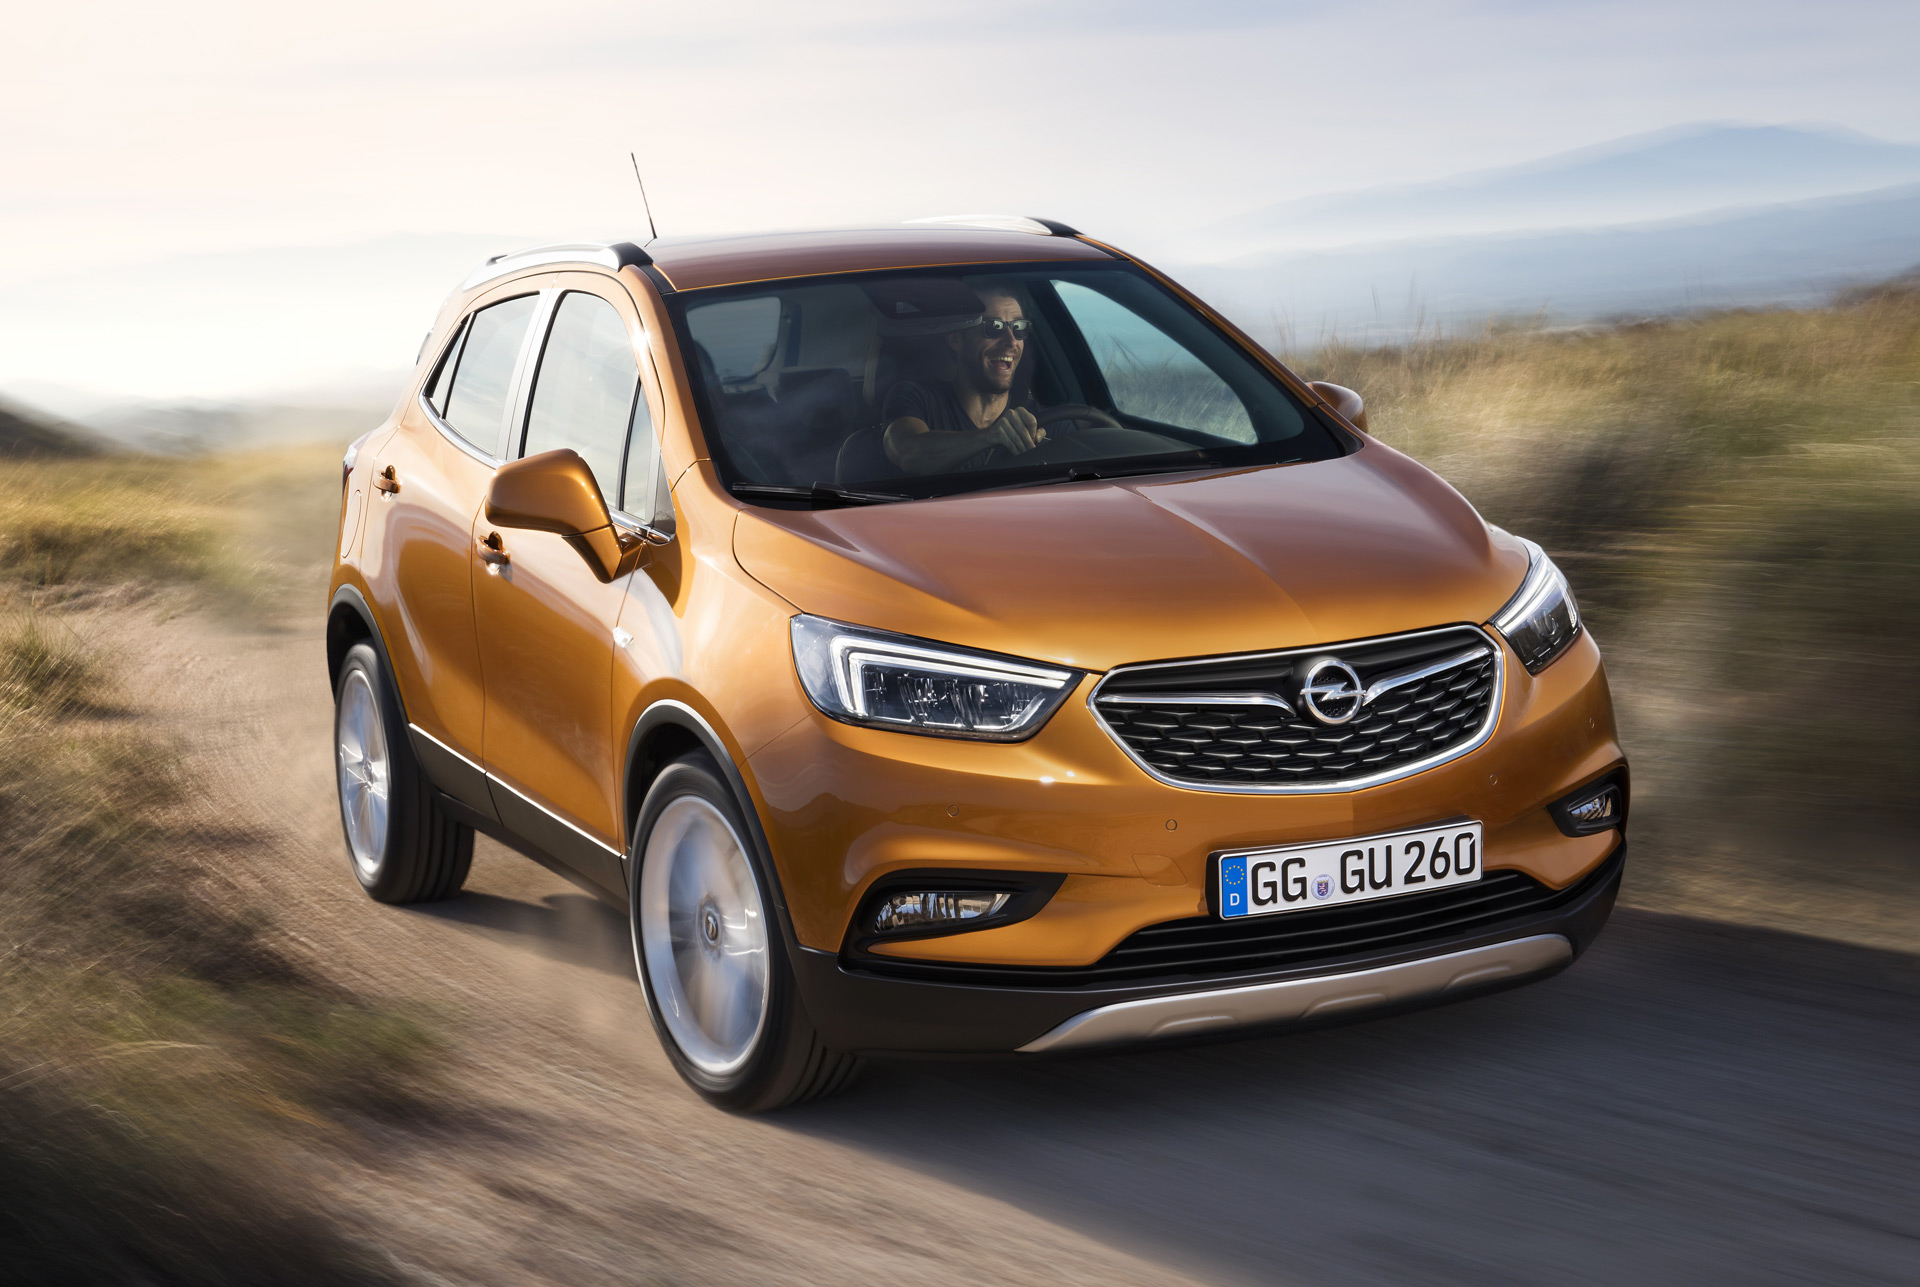 First Drive Opel S New Mokka X Crossover Hits The Spot